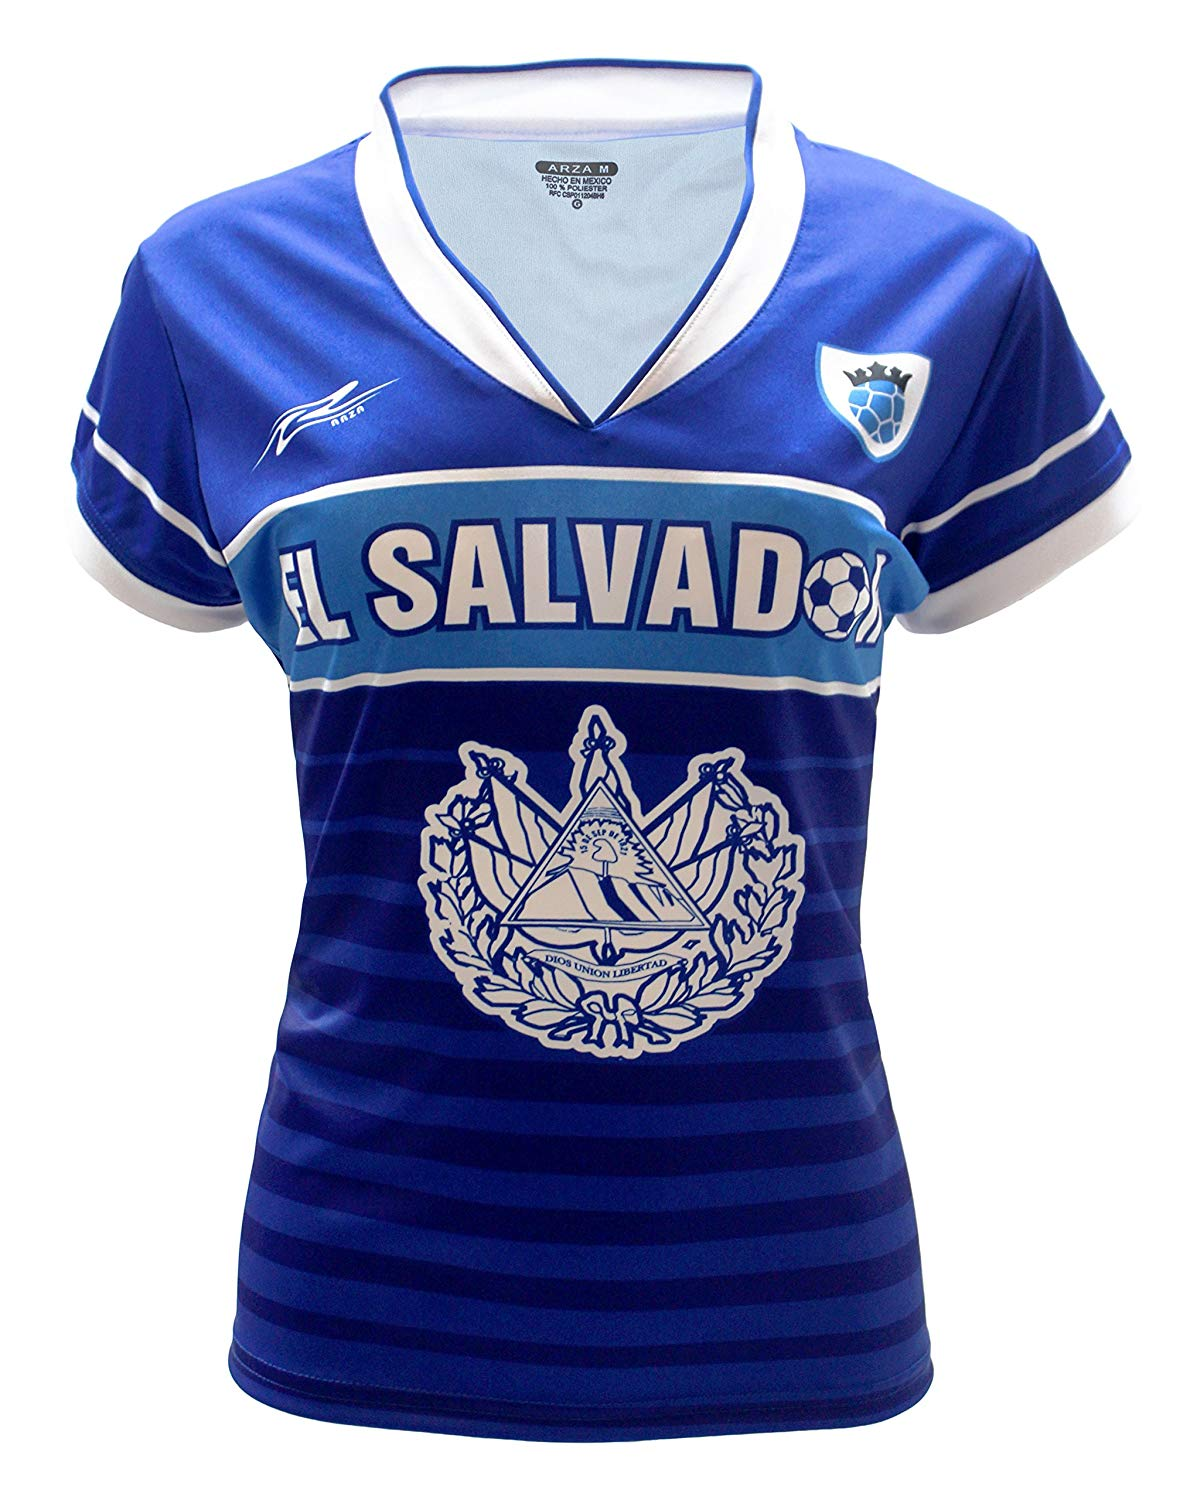 fef286697 Get Quotations · Arza Sports El Salvador Slim Women Soccer Jersey Exclusive  Design